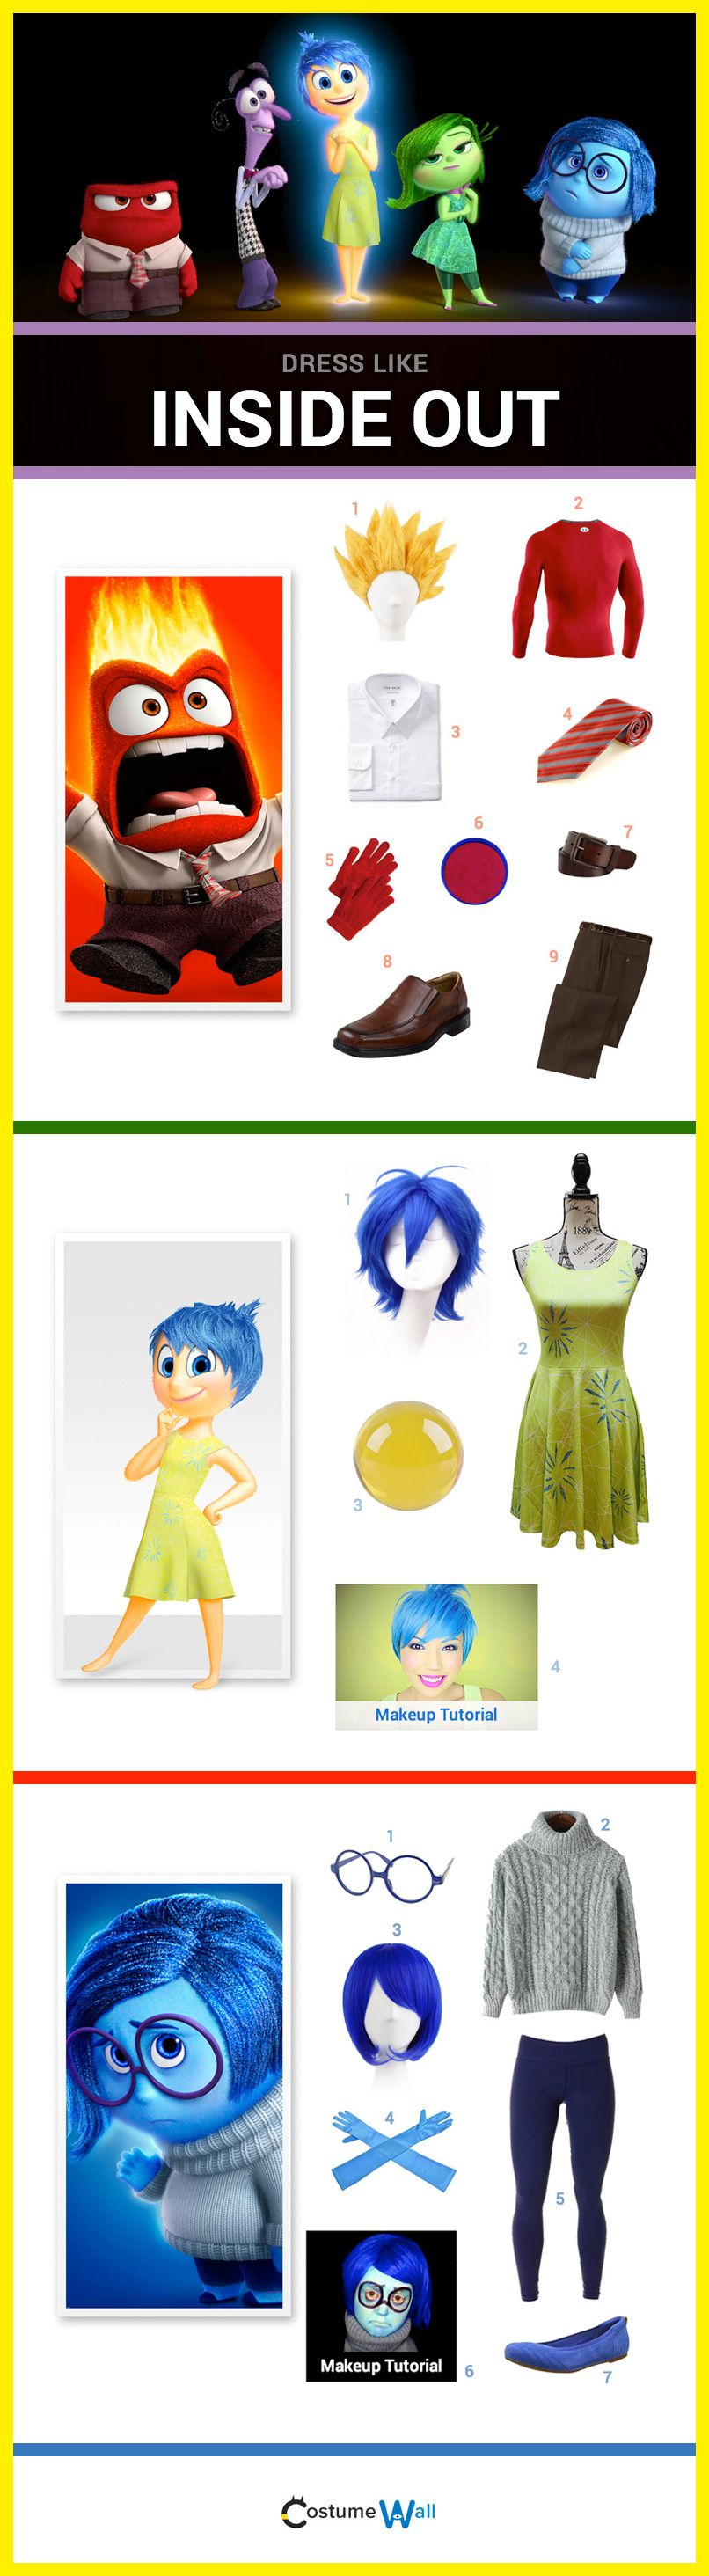 Inside Out Costume Ideas Costume Wall Inside Out Costume Halloween Costumes Joy Costume